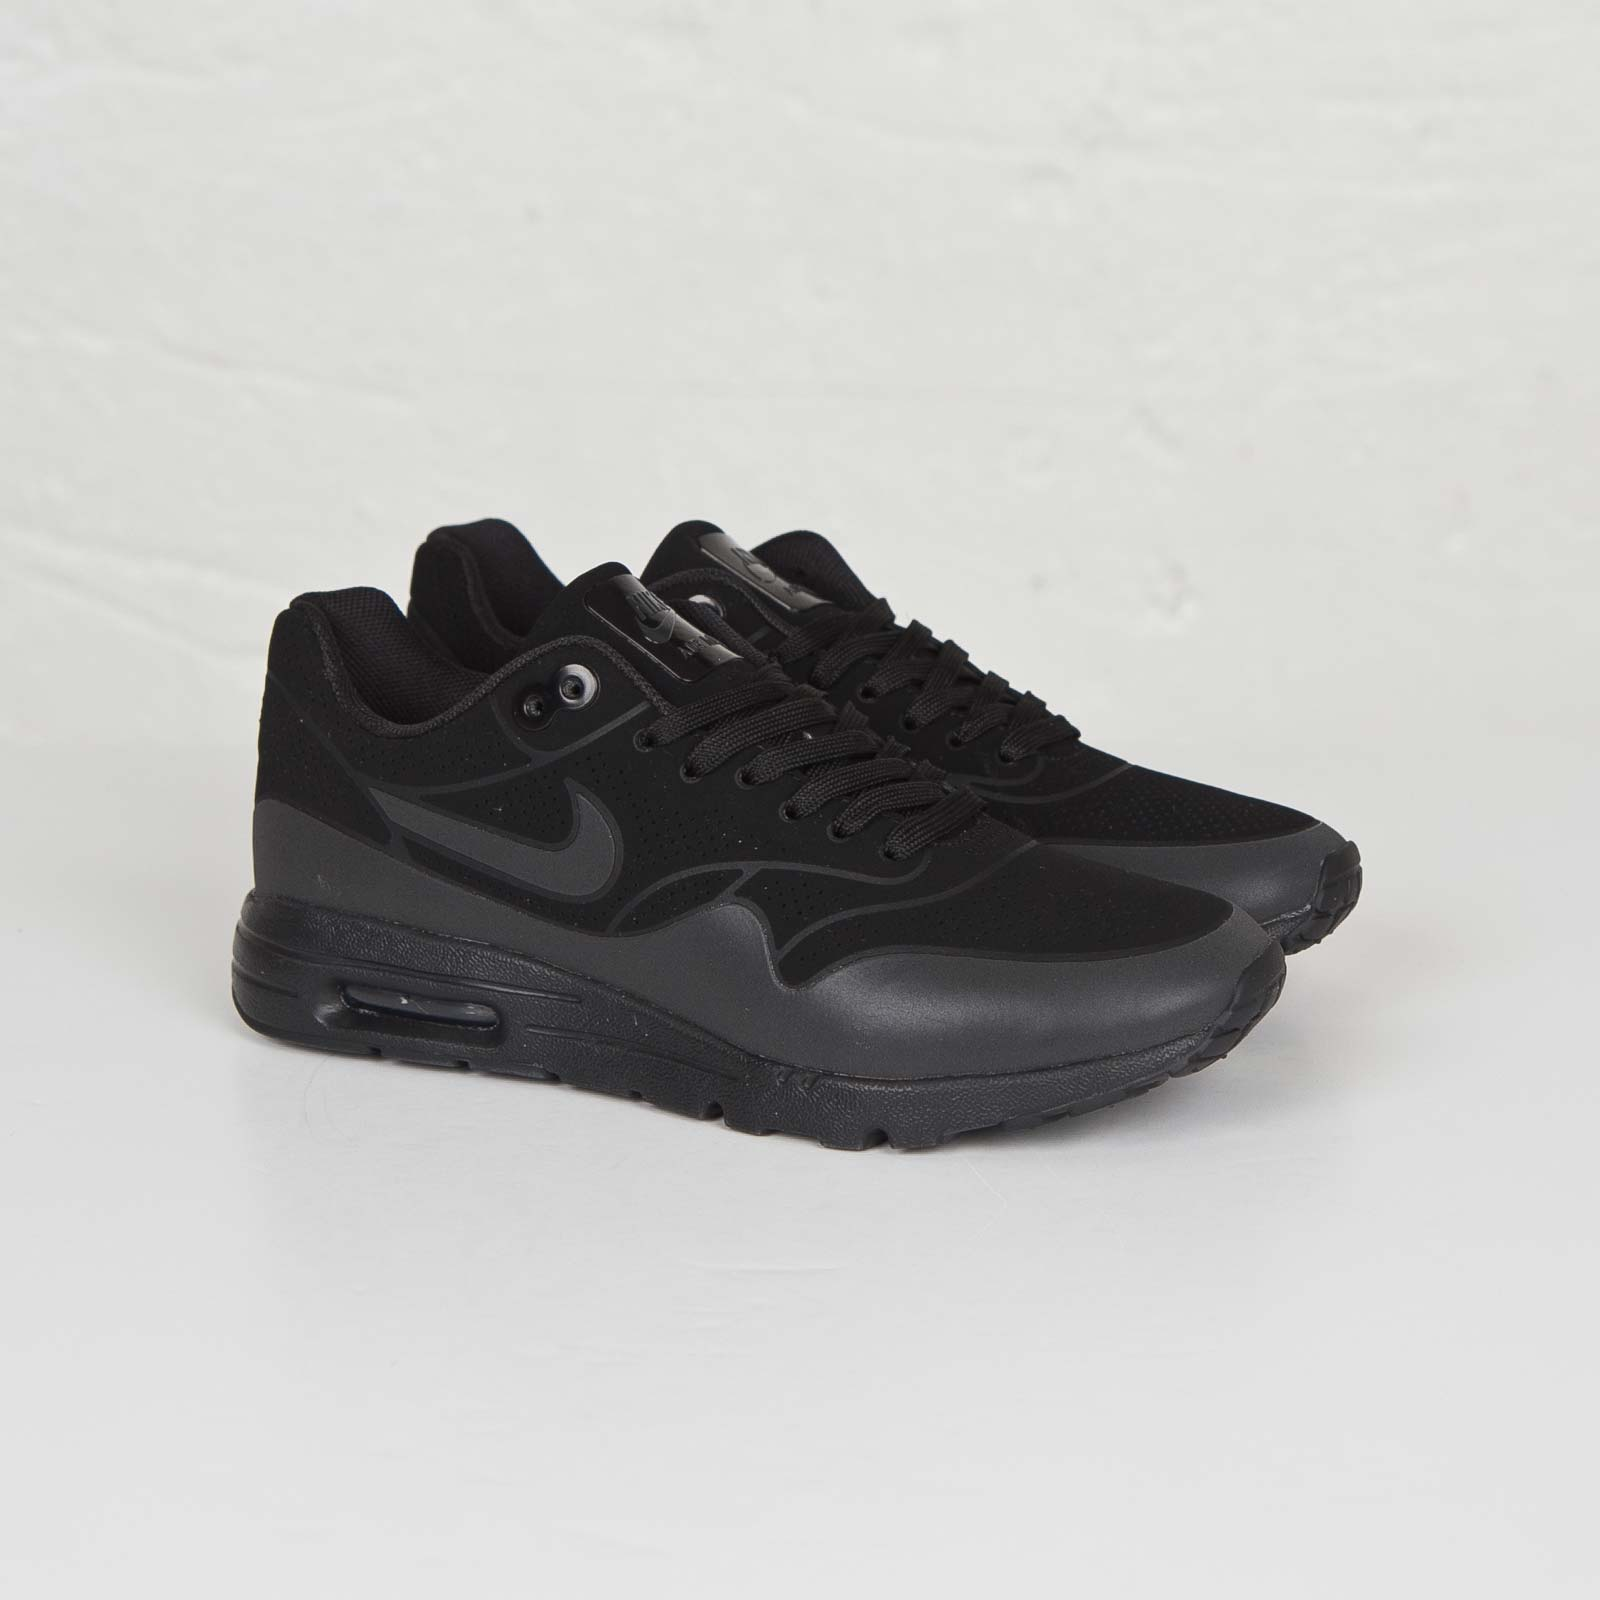 low cost 116a1 9d86f Nike Wmns Air Max 1 Ultra Moire